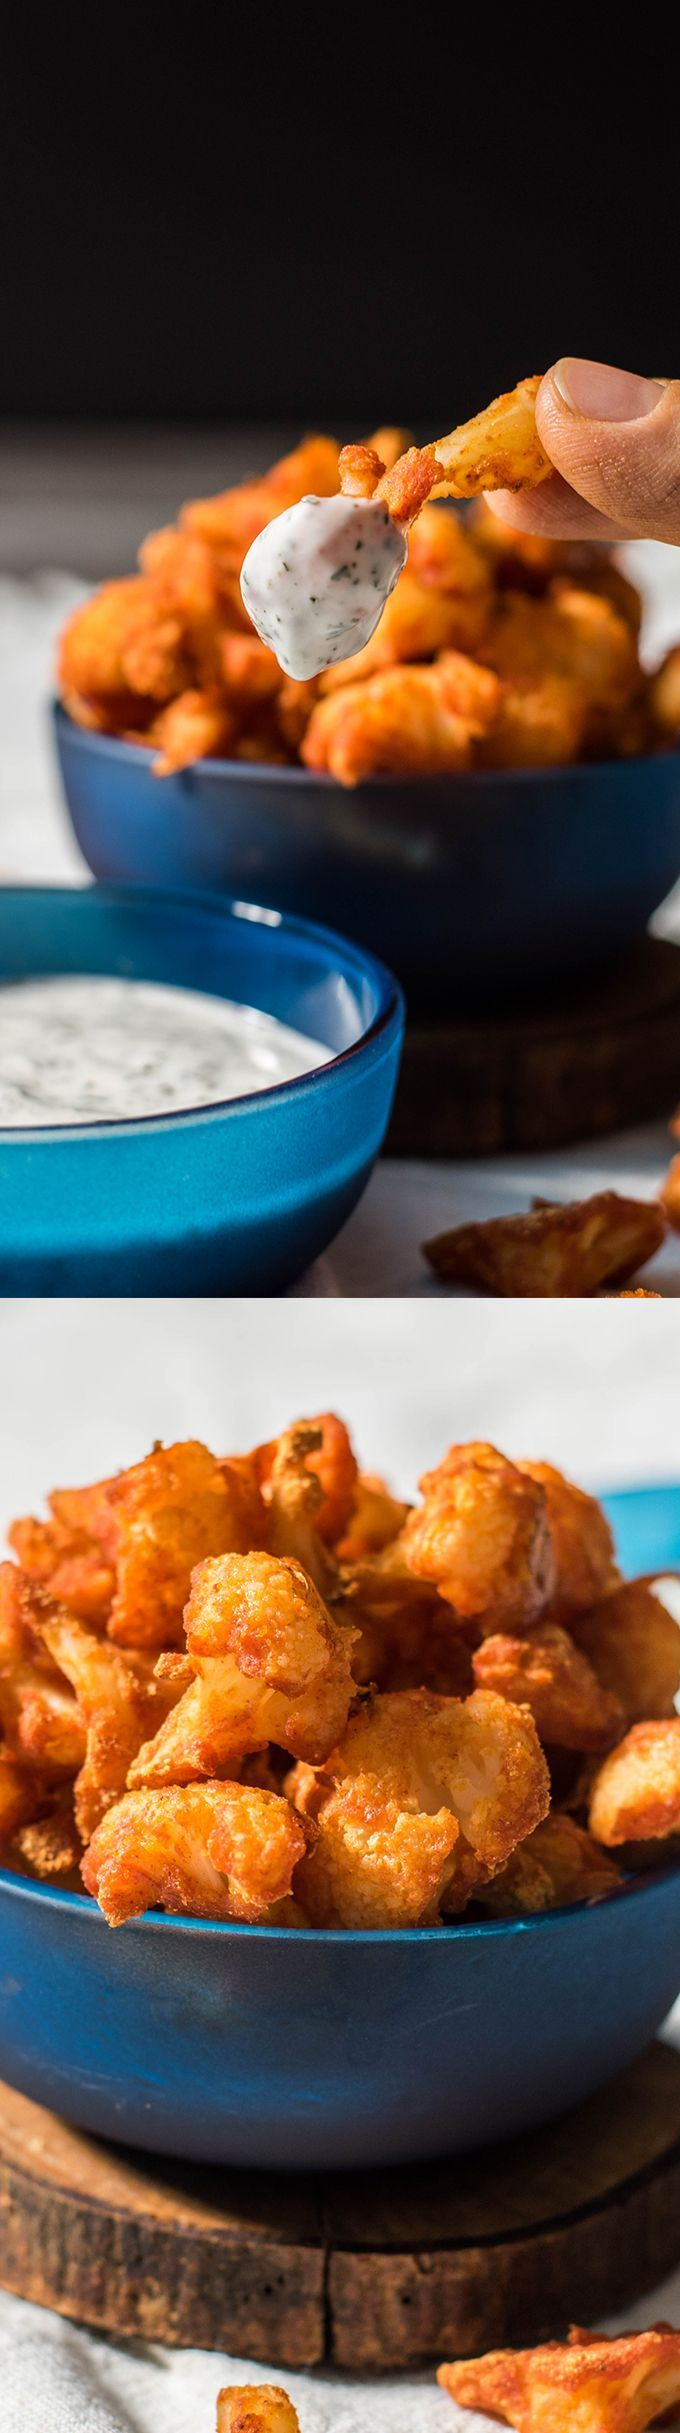 Skinny, spicy and scrumptious cauliflower wings. Perfect vegetarian alternative to hot wings. - http://giverecipe.com